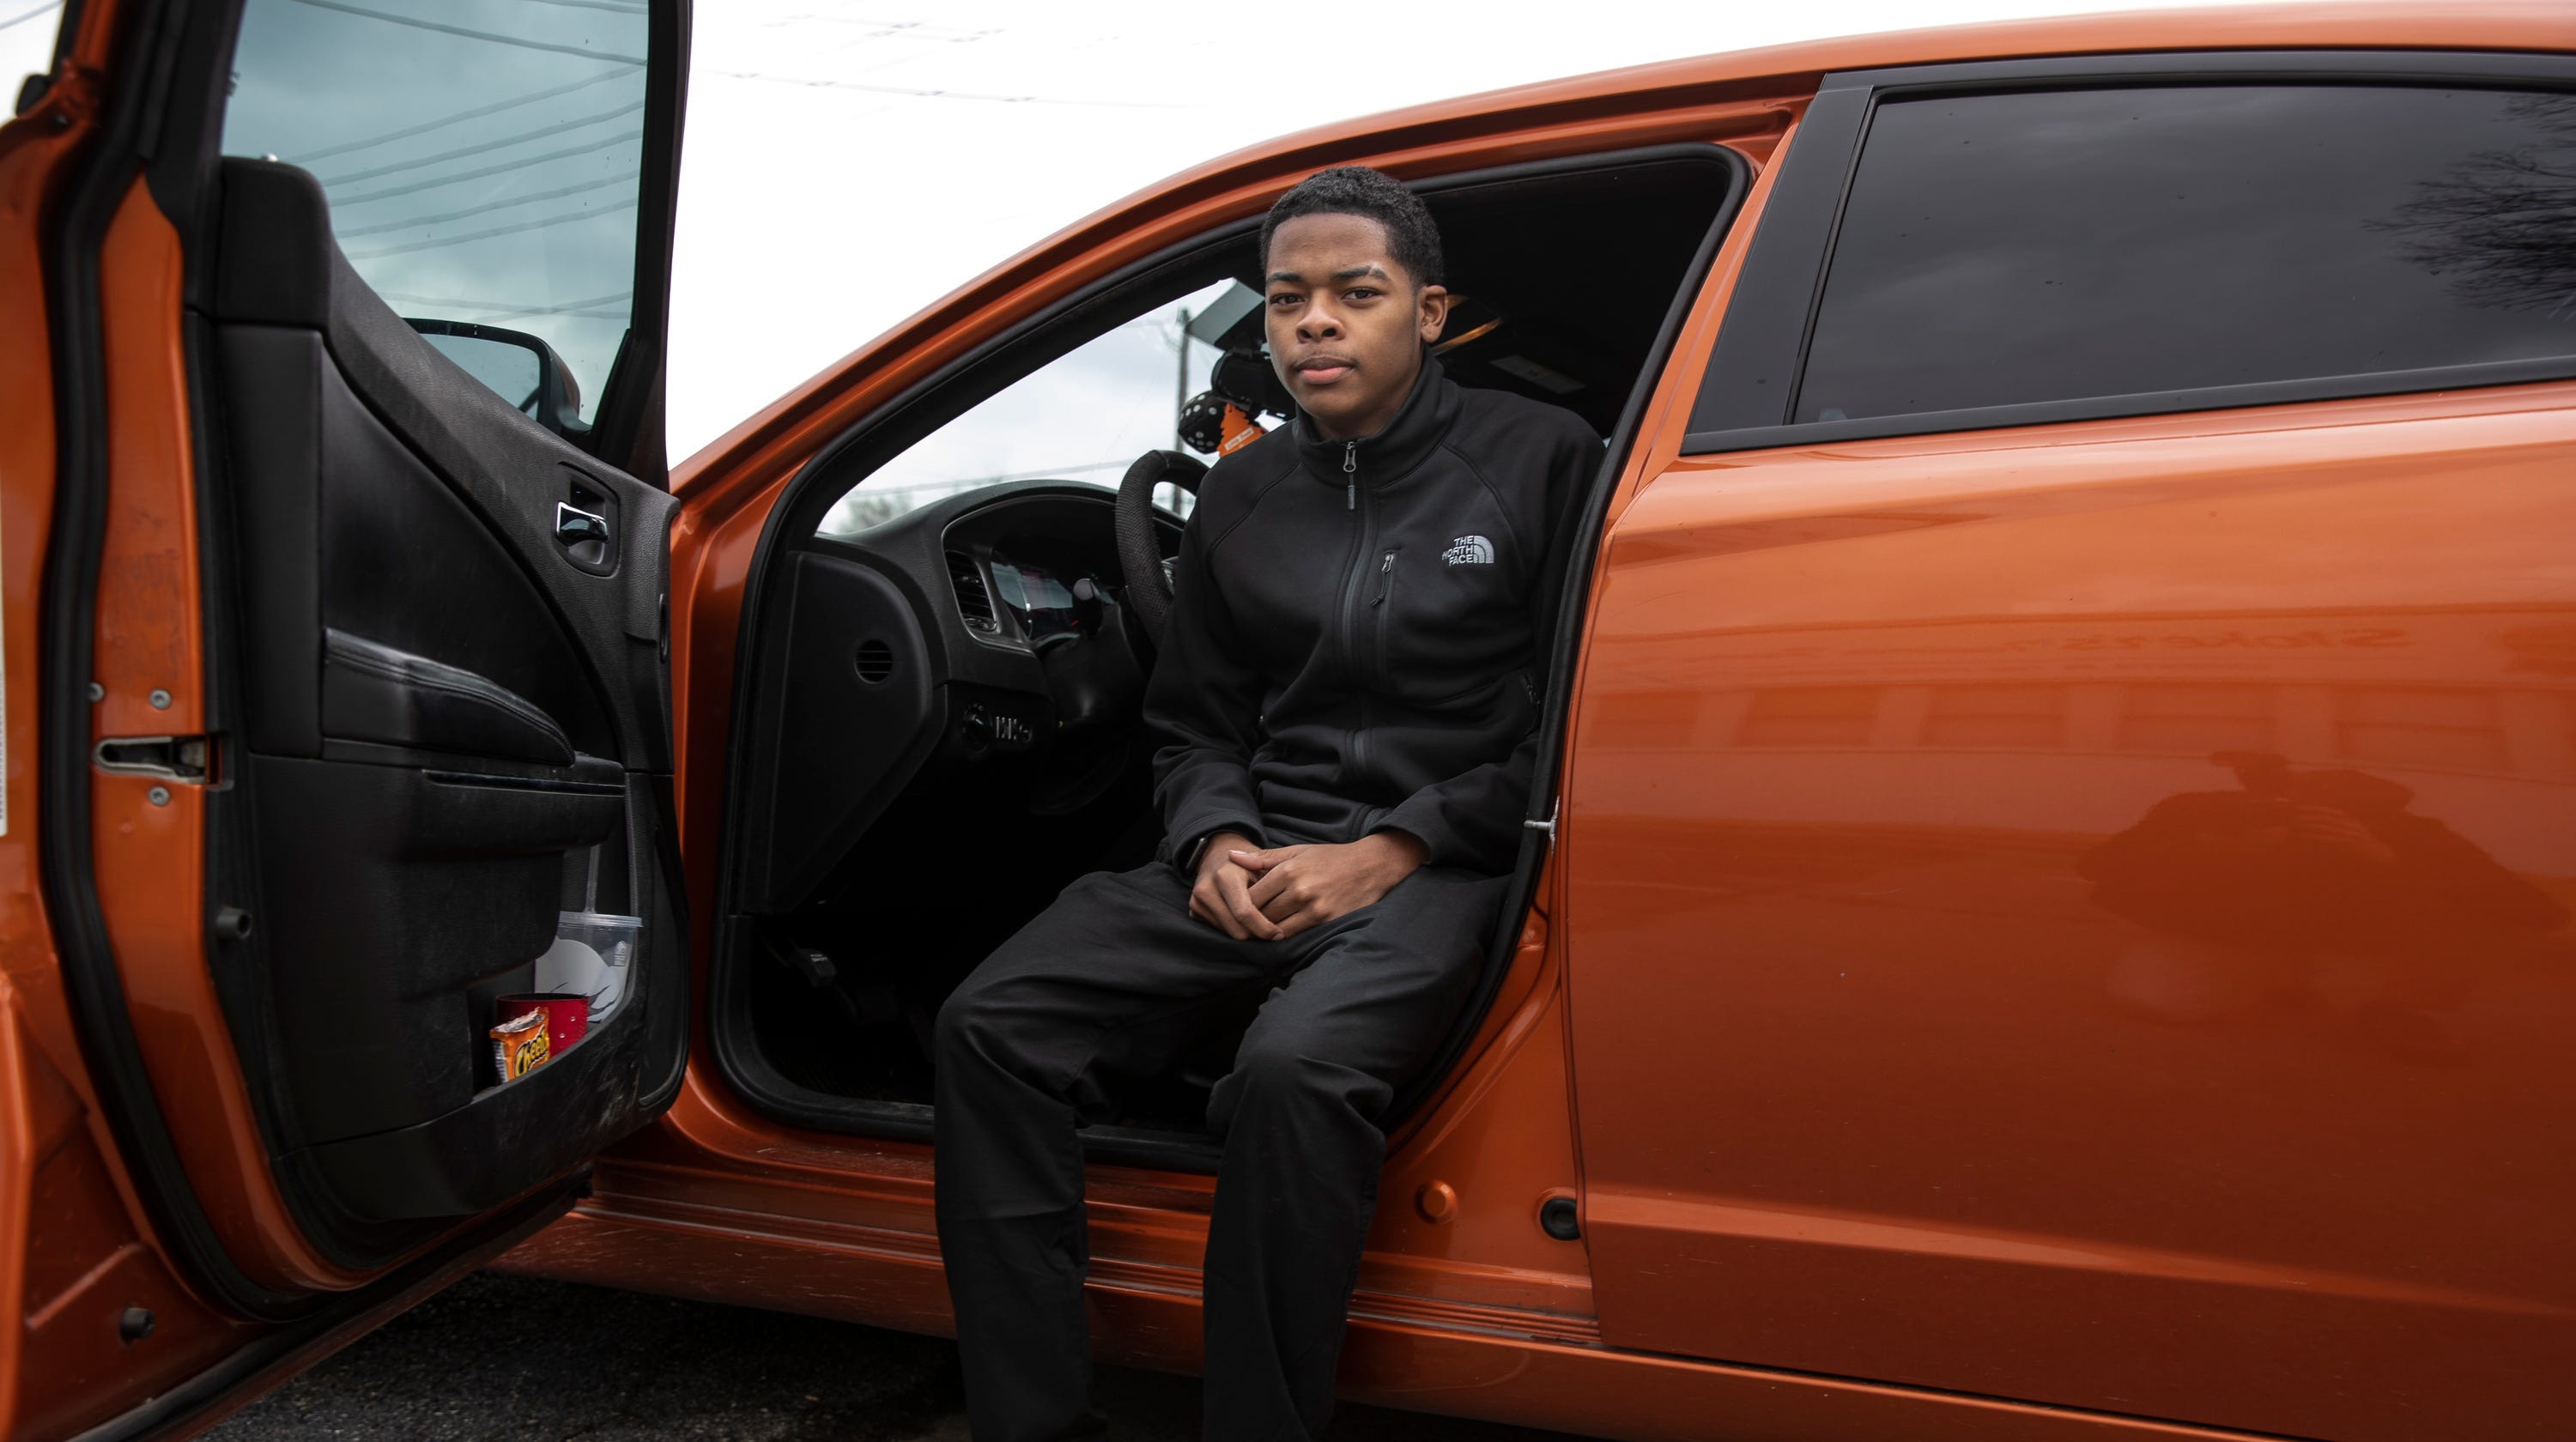 Louisville police face heat after black teen's traffic stop